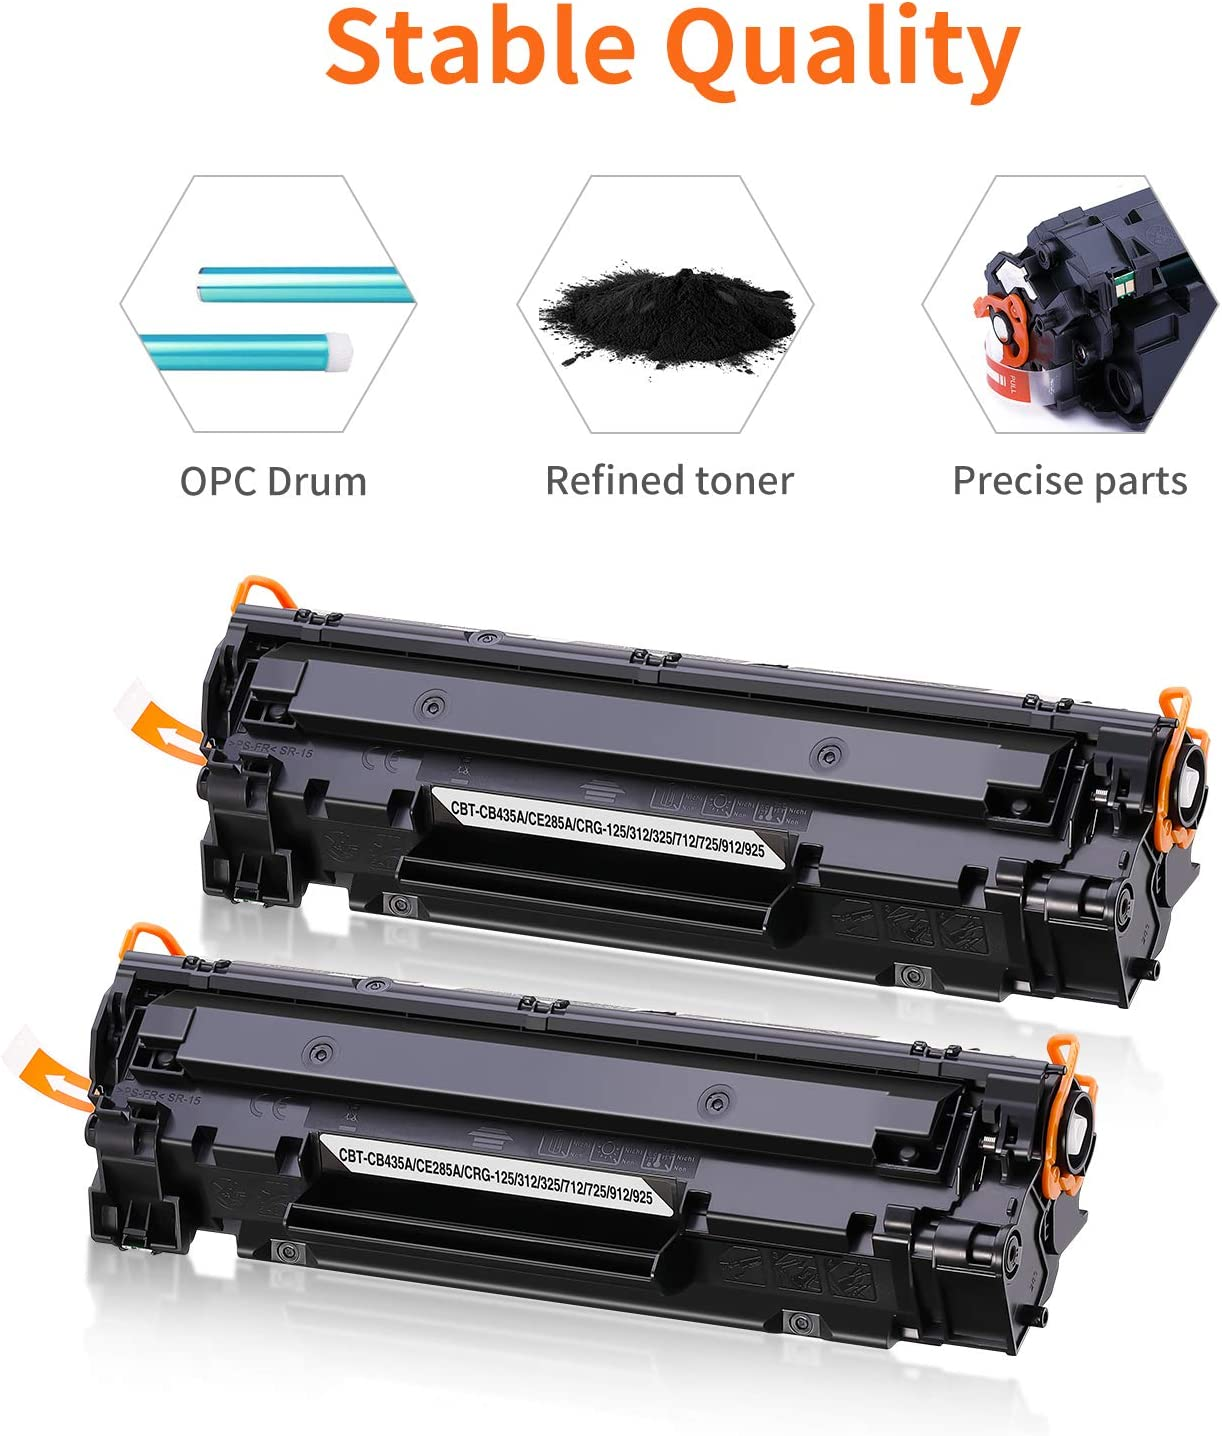 OfficeWorld CE285A Black Toner Cartridge Replace for HP CE285A 85A Compatible with HP Laserjet Pro P1102W P1102 M1132MFP M1217NFW M1212NF M1132 P1100 M1136 M1210 M1212 M1213NF P1106 Canon LBP 6000